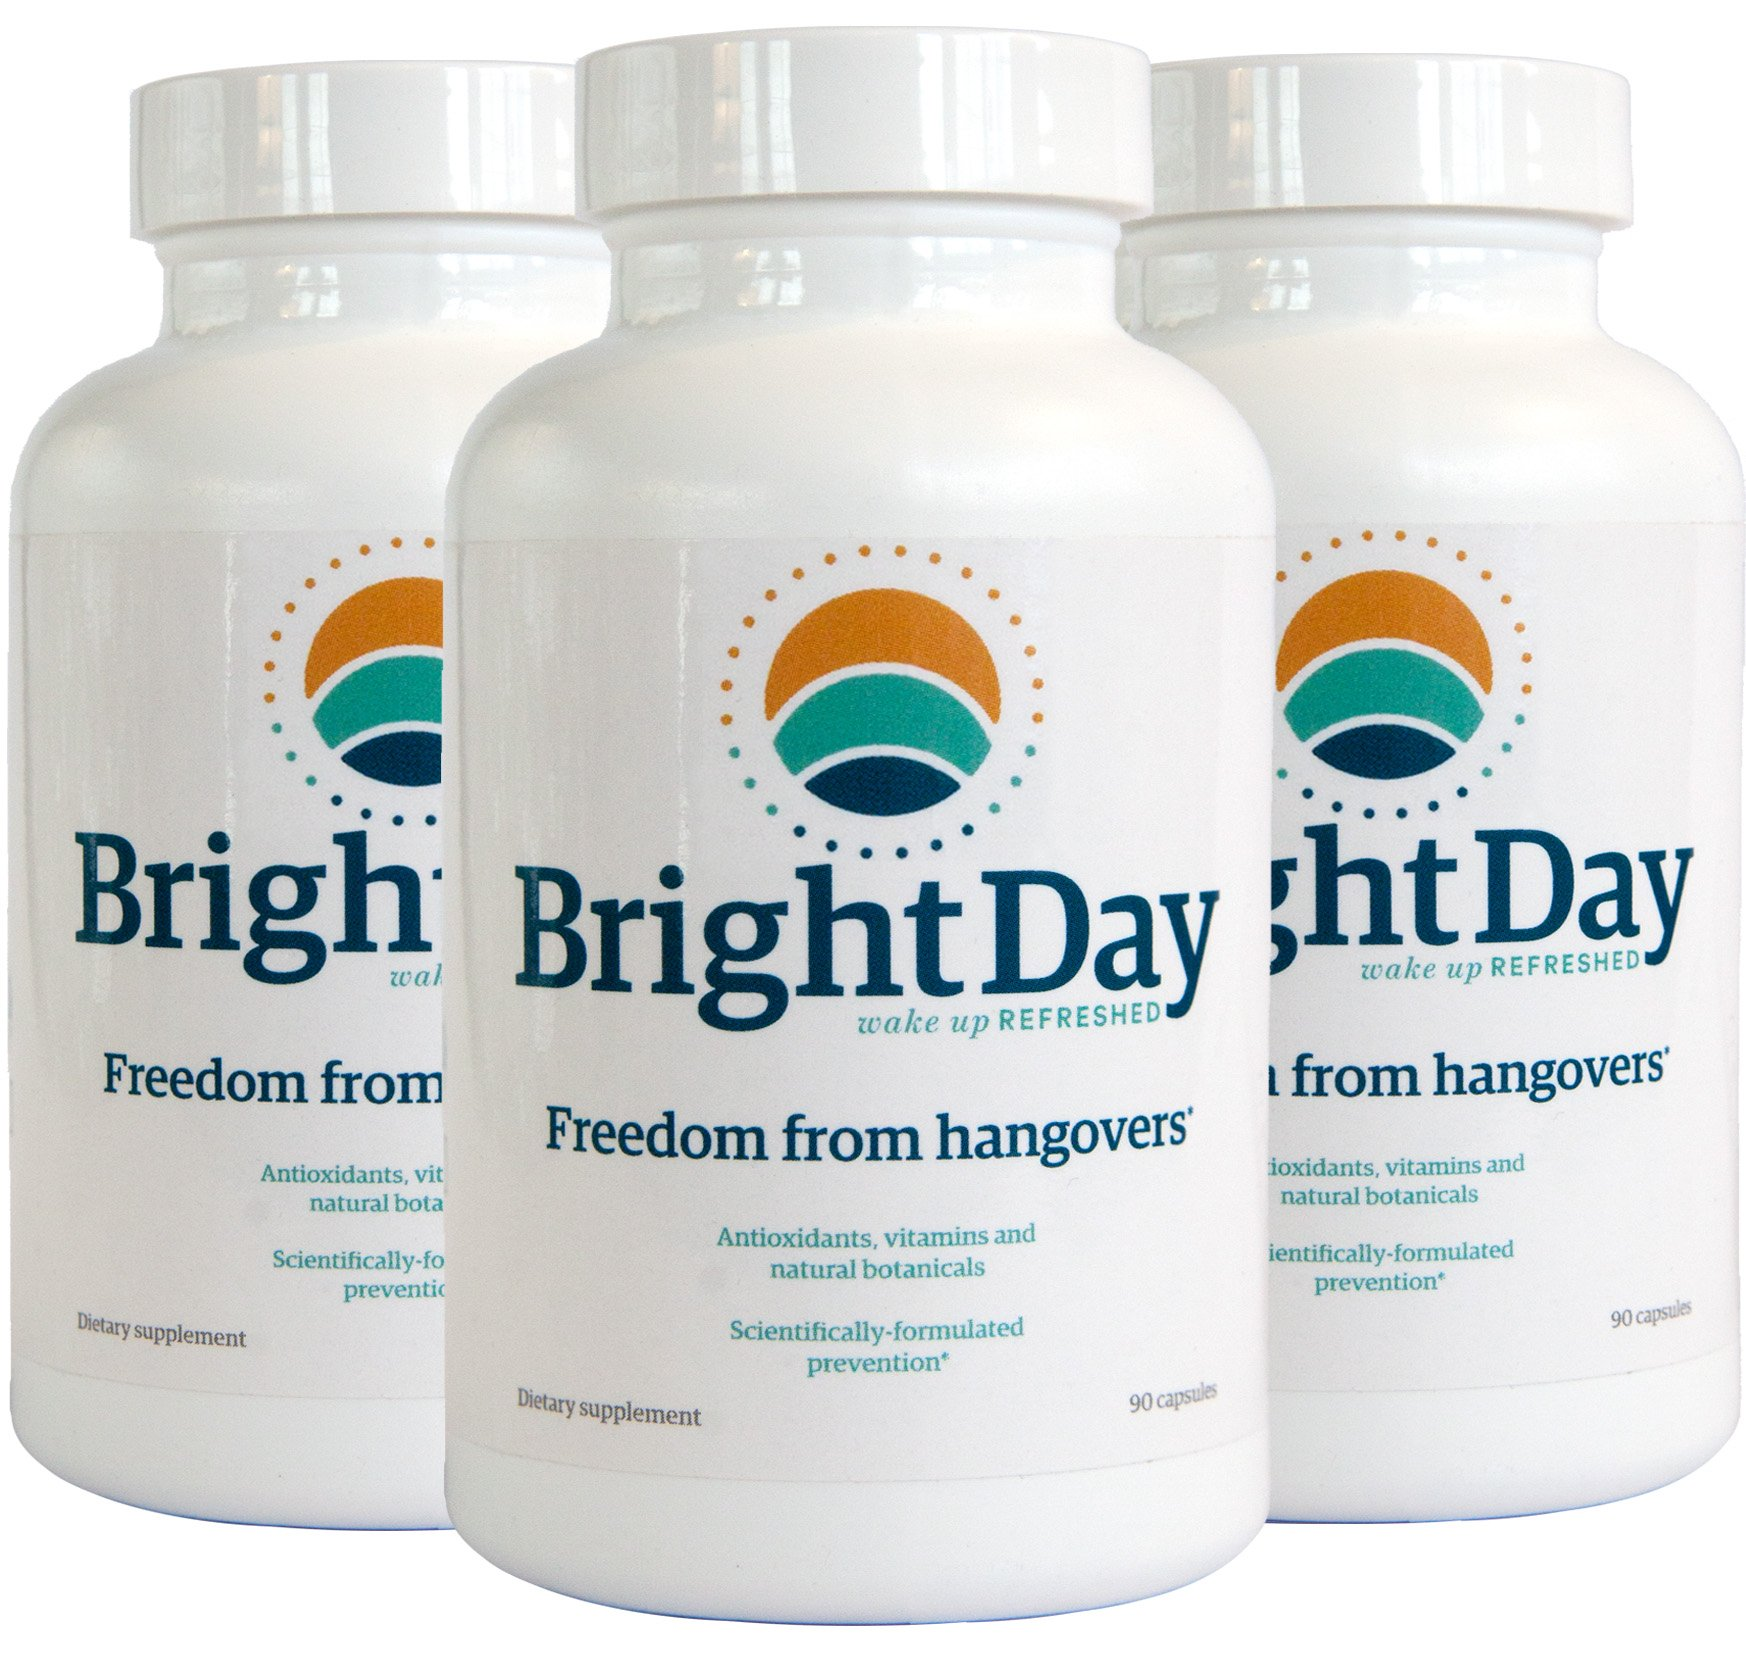 BrightDay Hangover Prevention Recovery Relief Pills (90 Capsules) -Alcohol Metabolism -Better Morning After -Liver Support -FDA Compliant and Made in the USA -Hangover are a Thing of the Past (3 Pack)